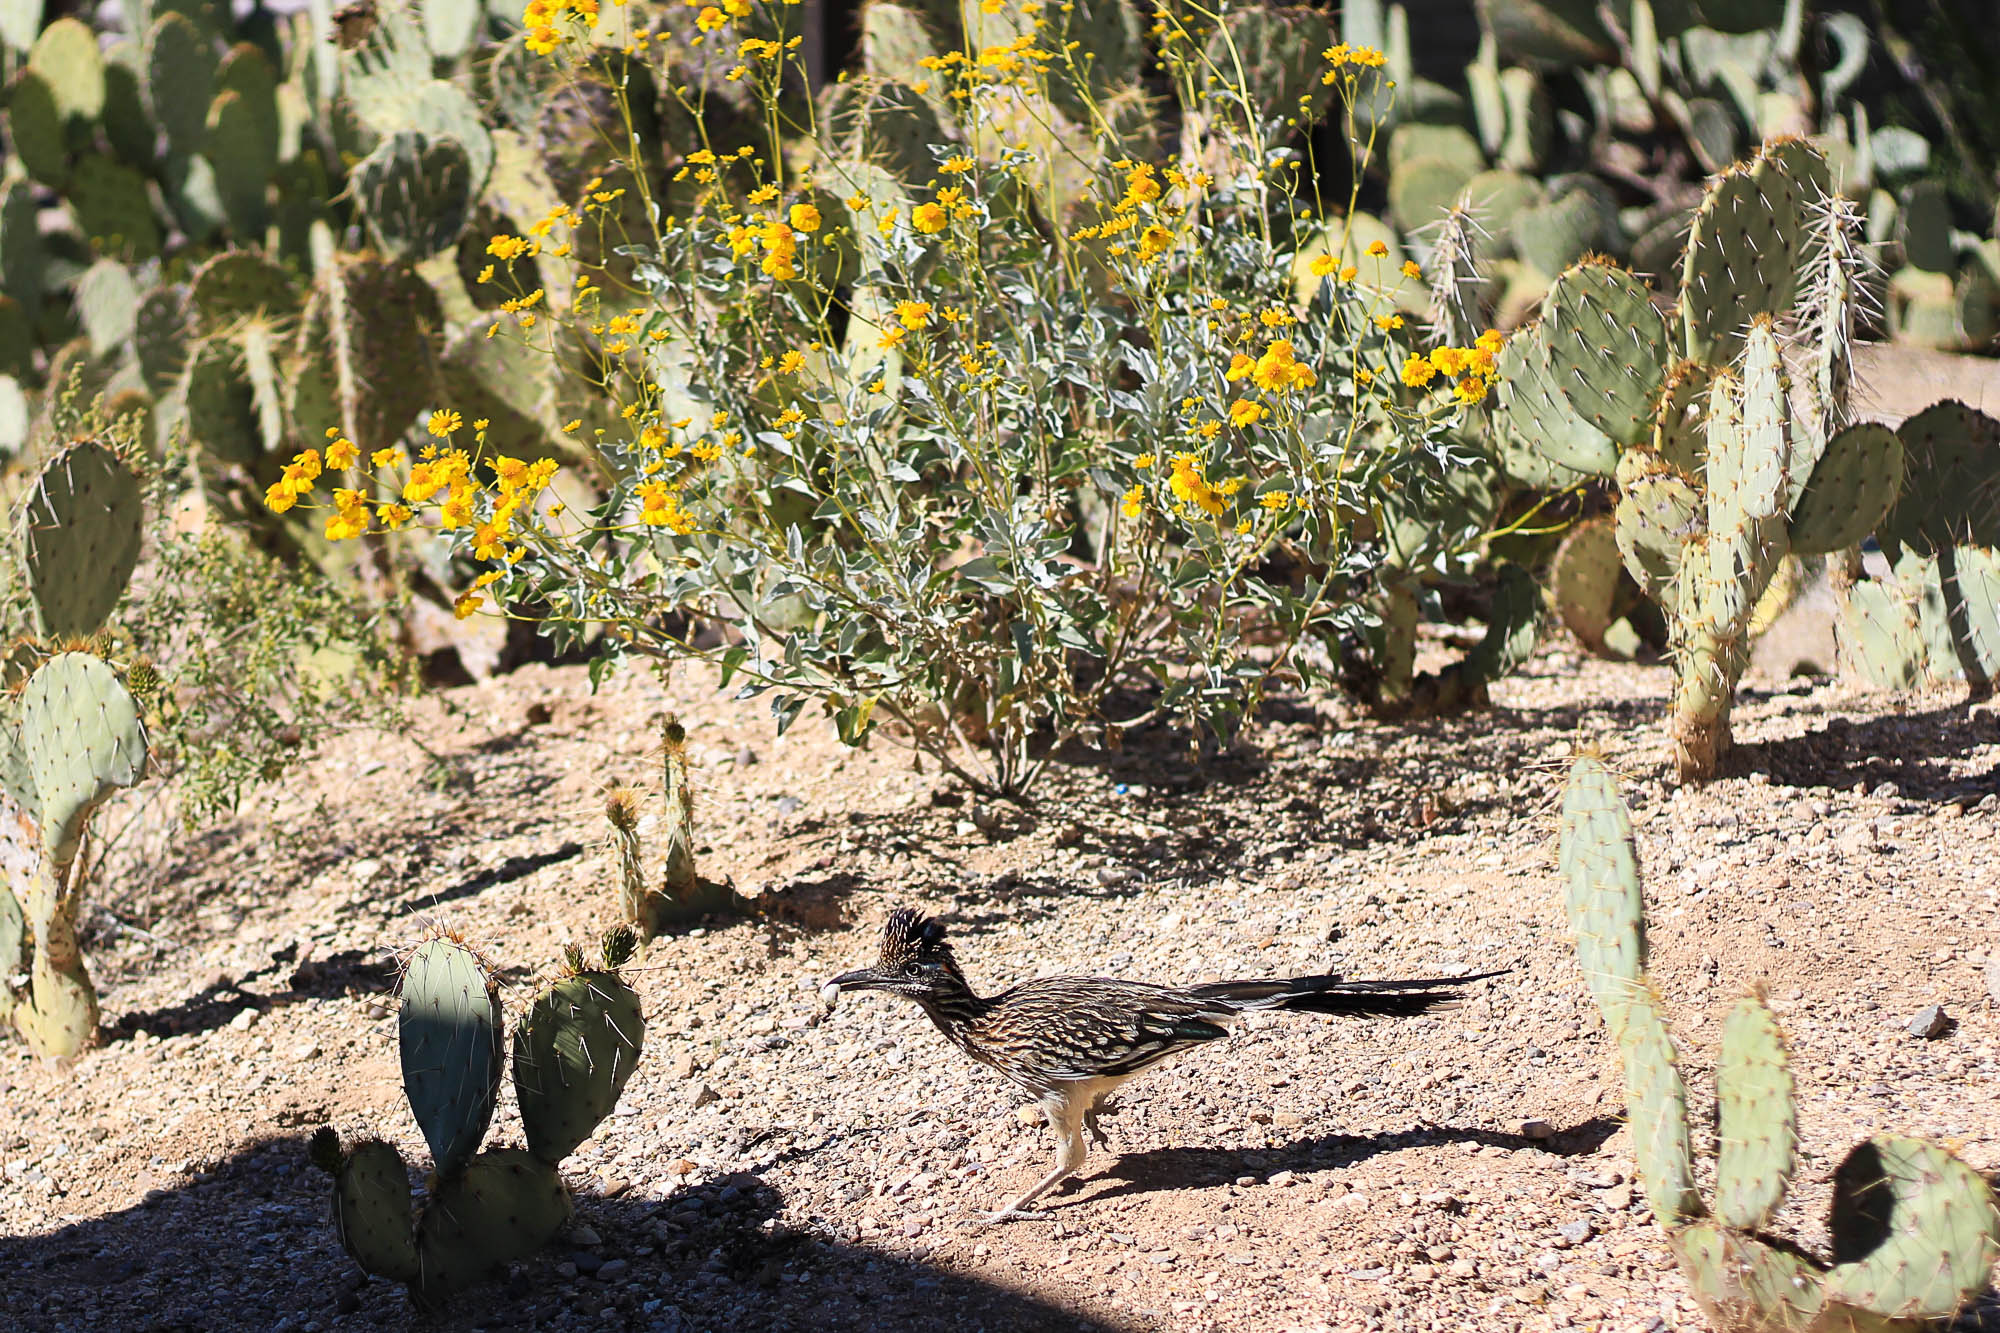 The road runner was running to shade, too!